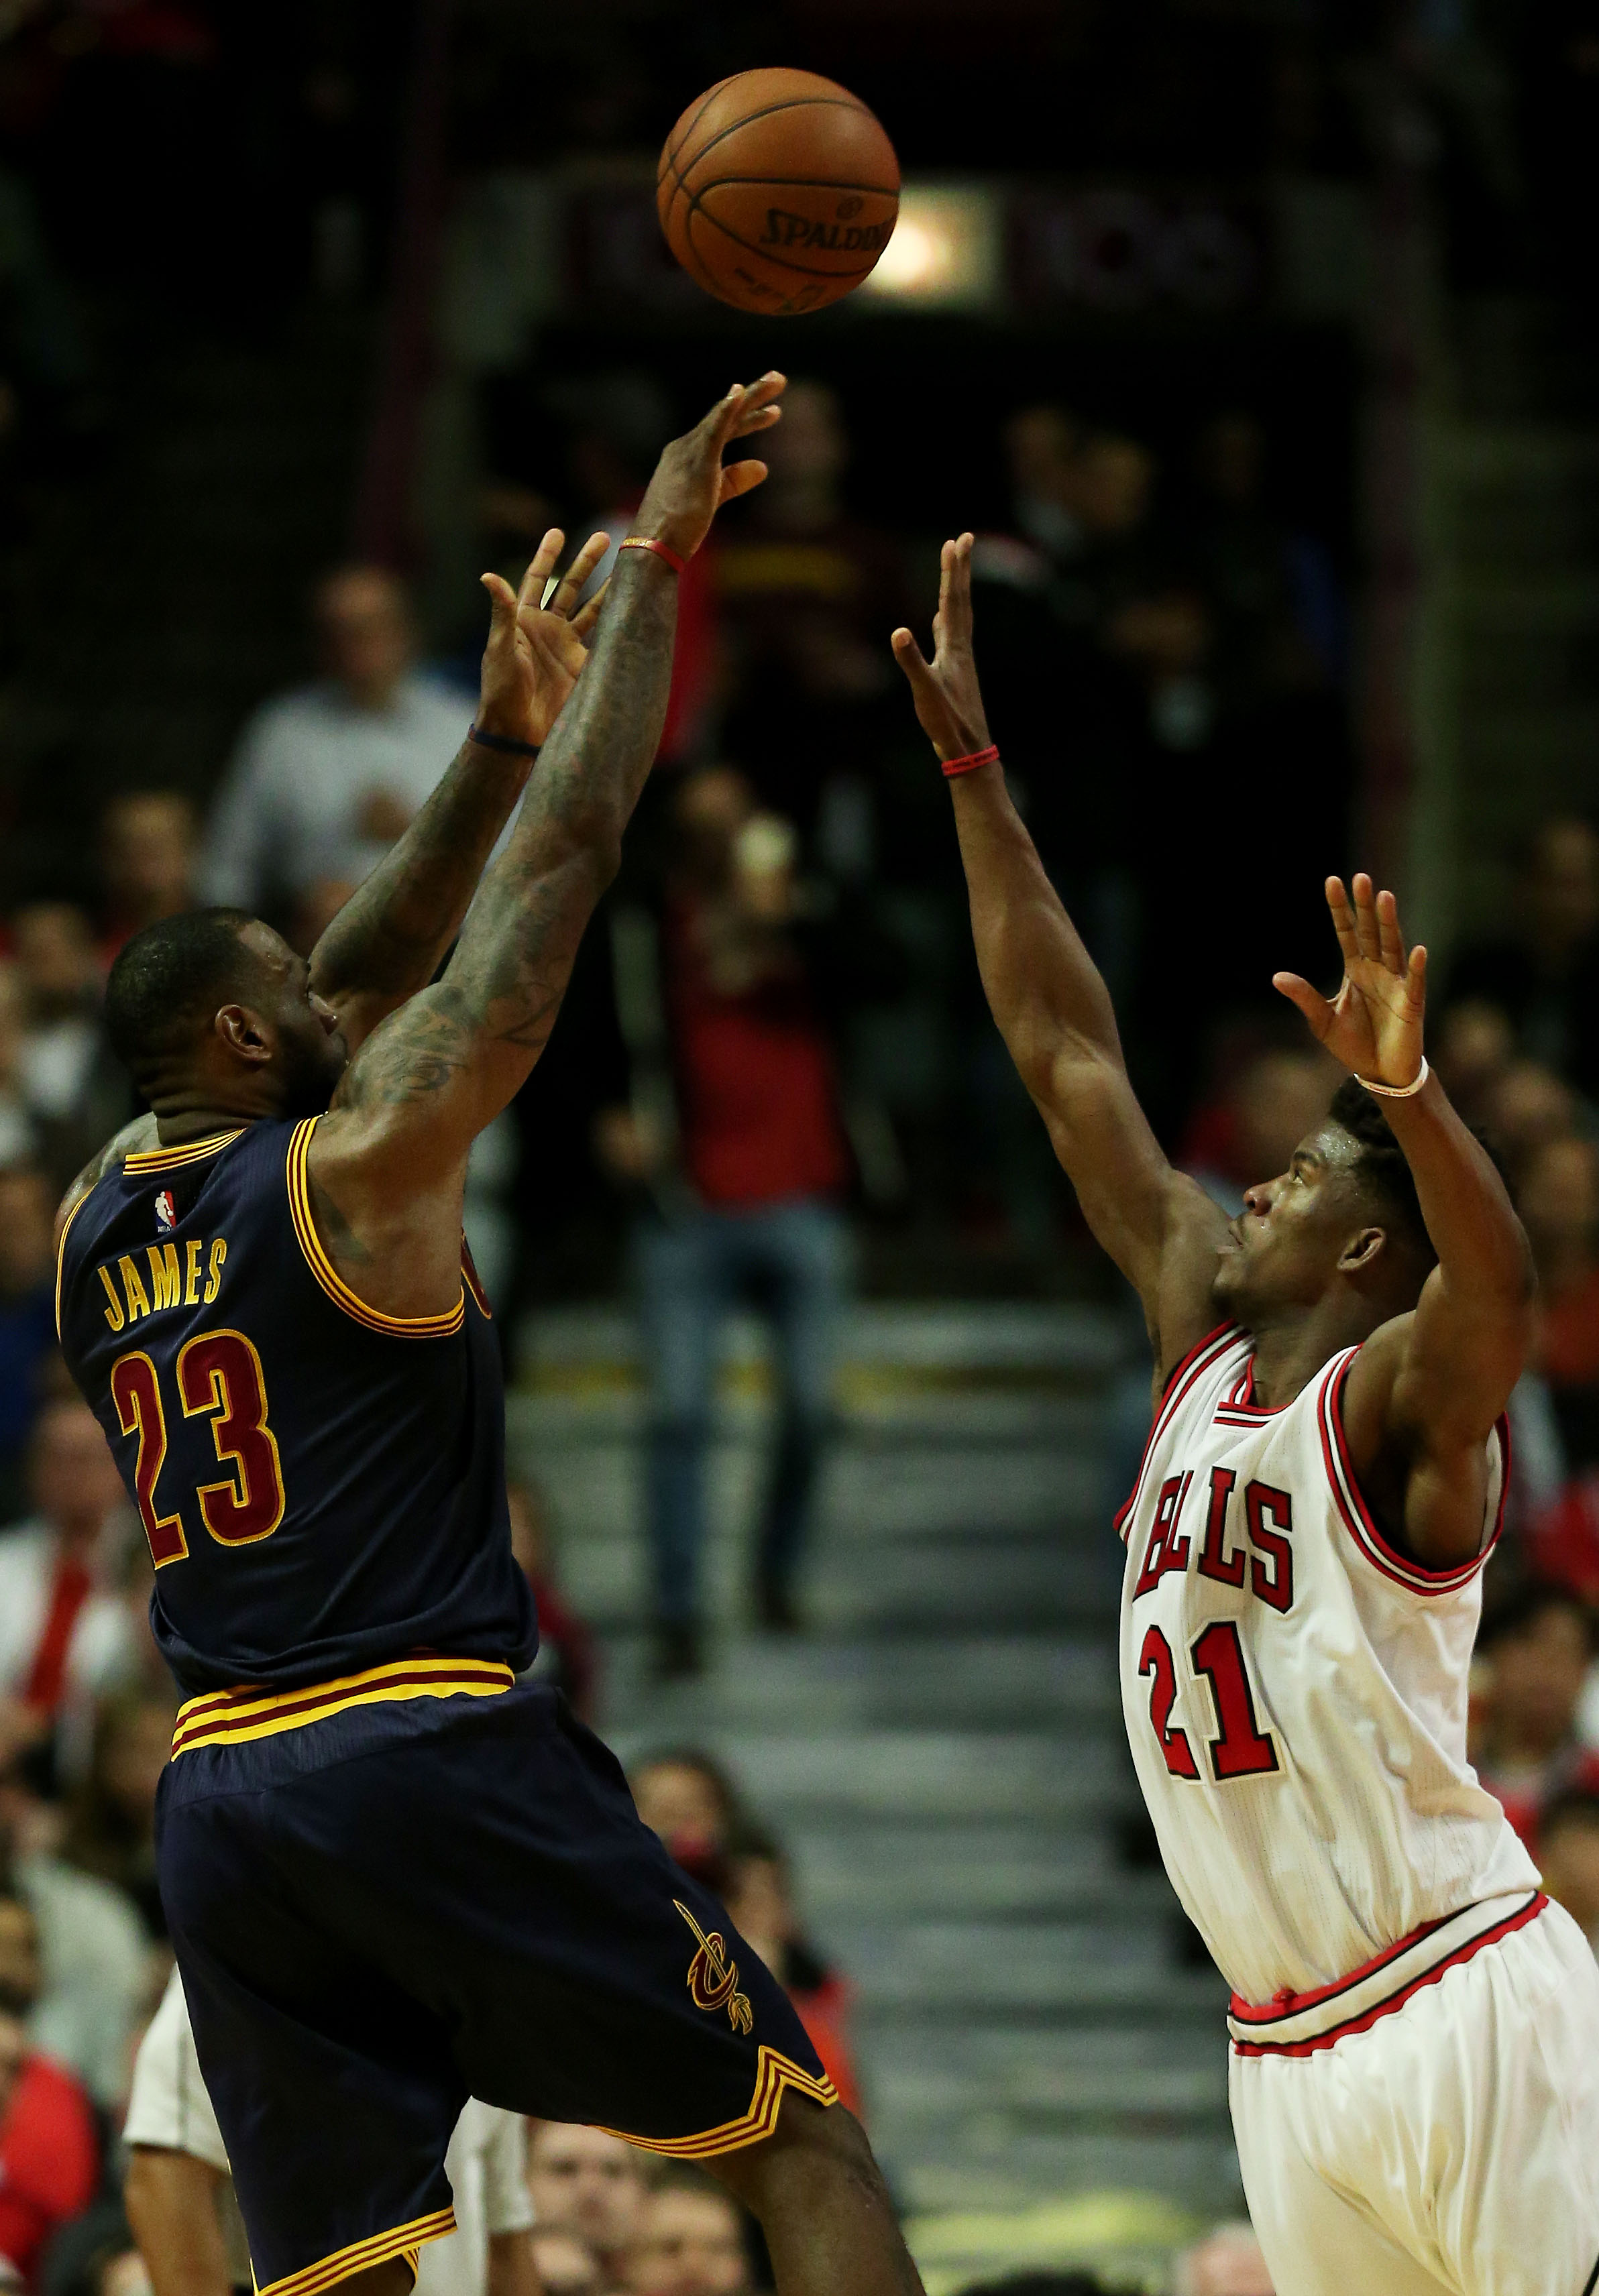 CHICAGO, IL - MAY 14:  LeBron James #23 of the Cleveland Cavaliers shoots against Jimmy Butler #21 of the Chicago Bulls in the third quarter during Game Six of the Eastern Conference Semifinals of the 2015 NBA Playoffs at United Center on May 14, 2015 in